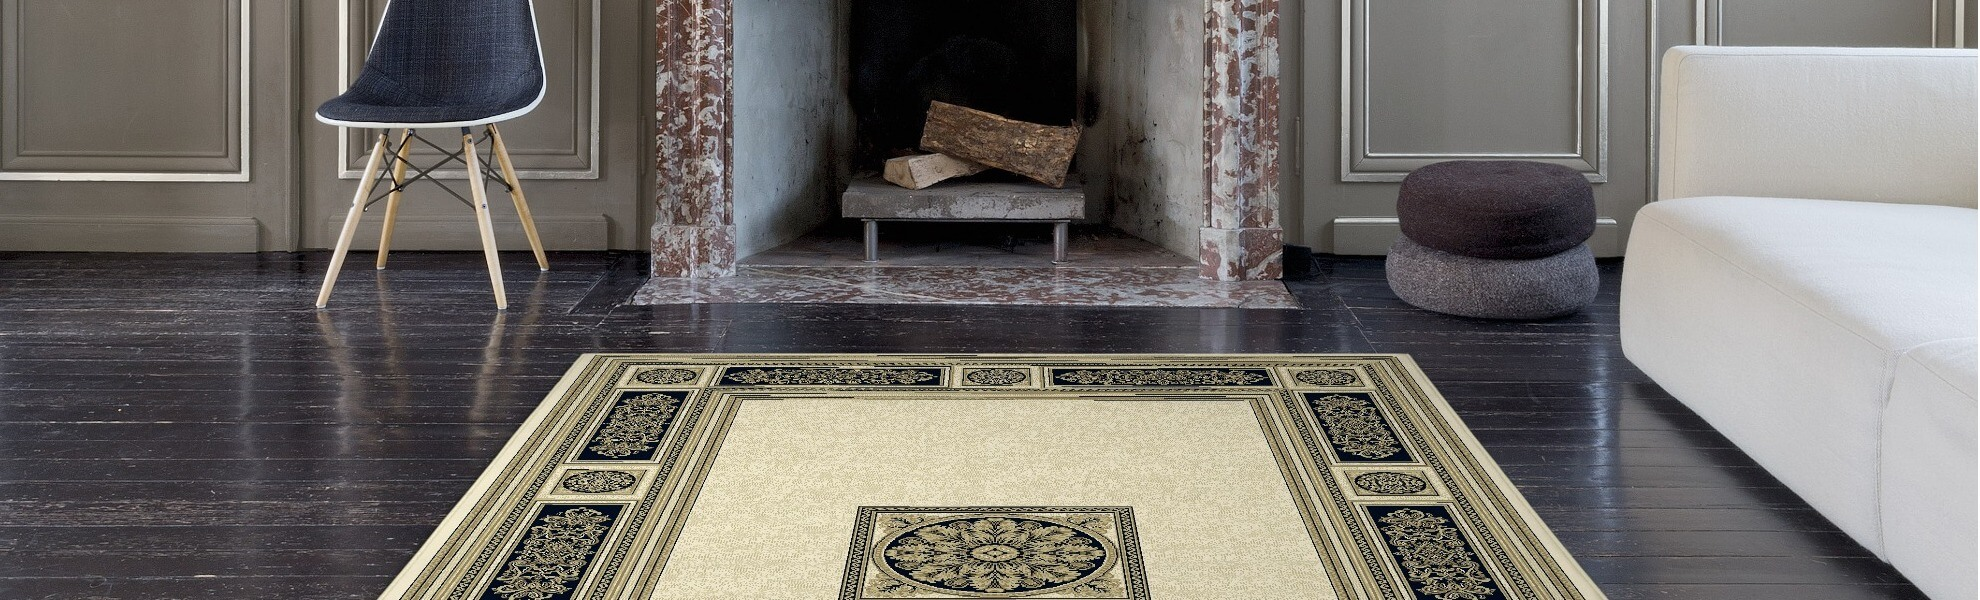 Transform your home with a beautiful rug